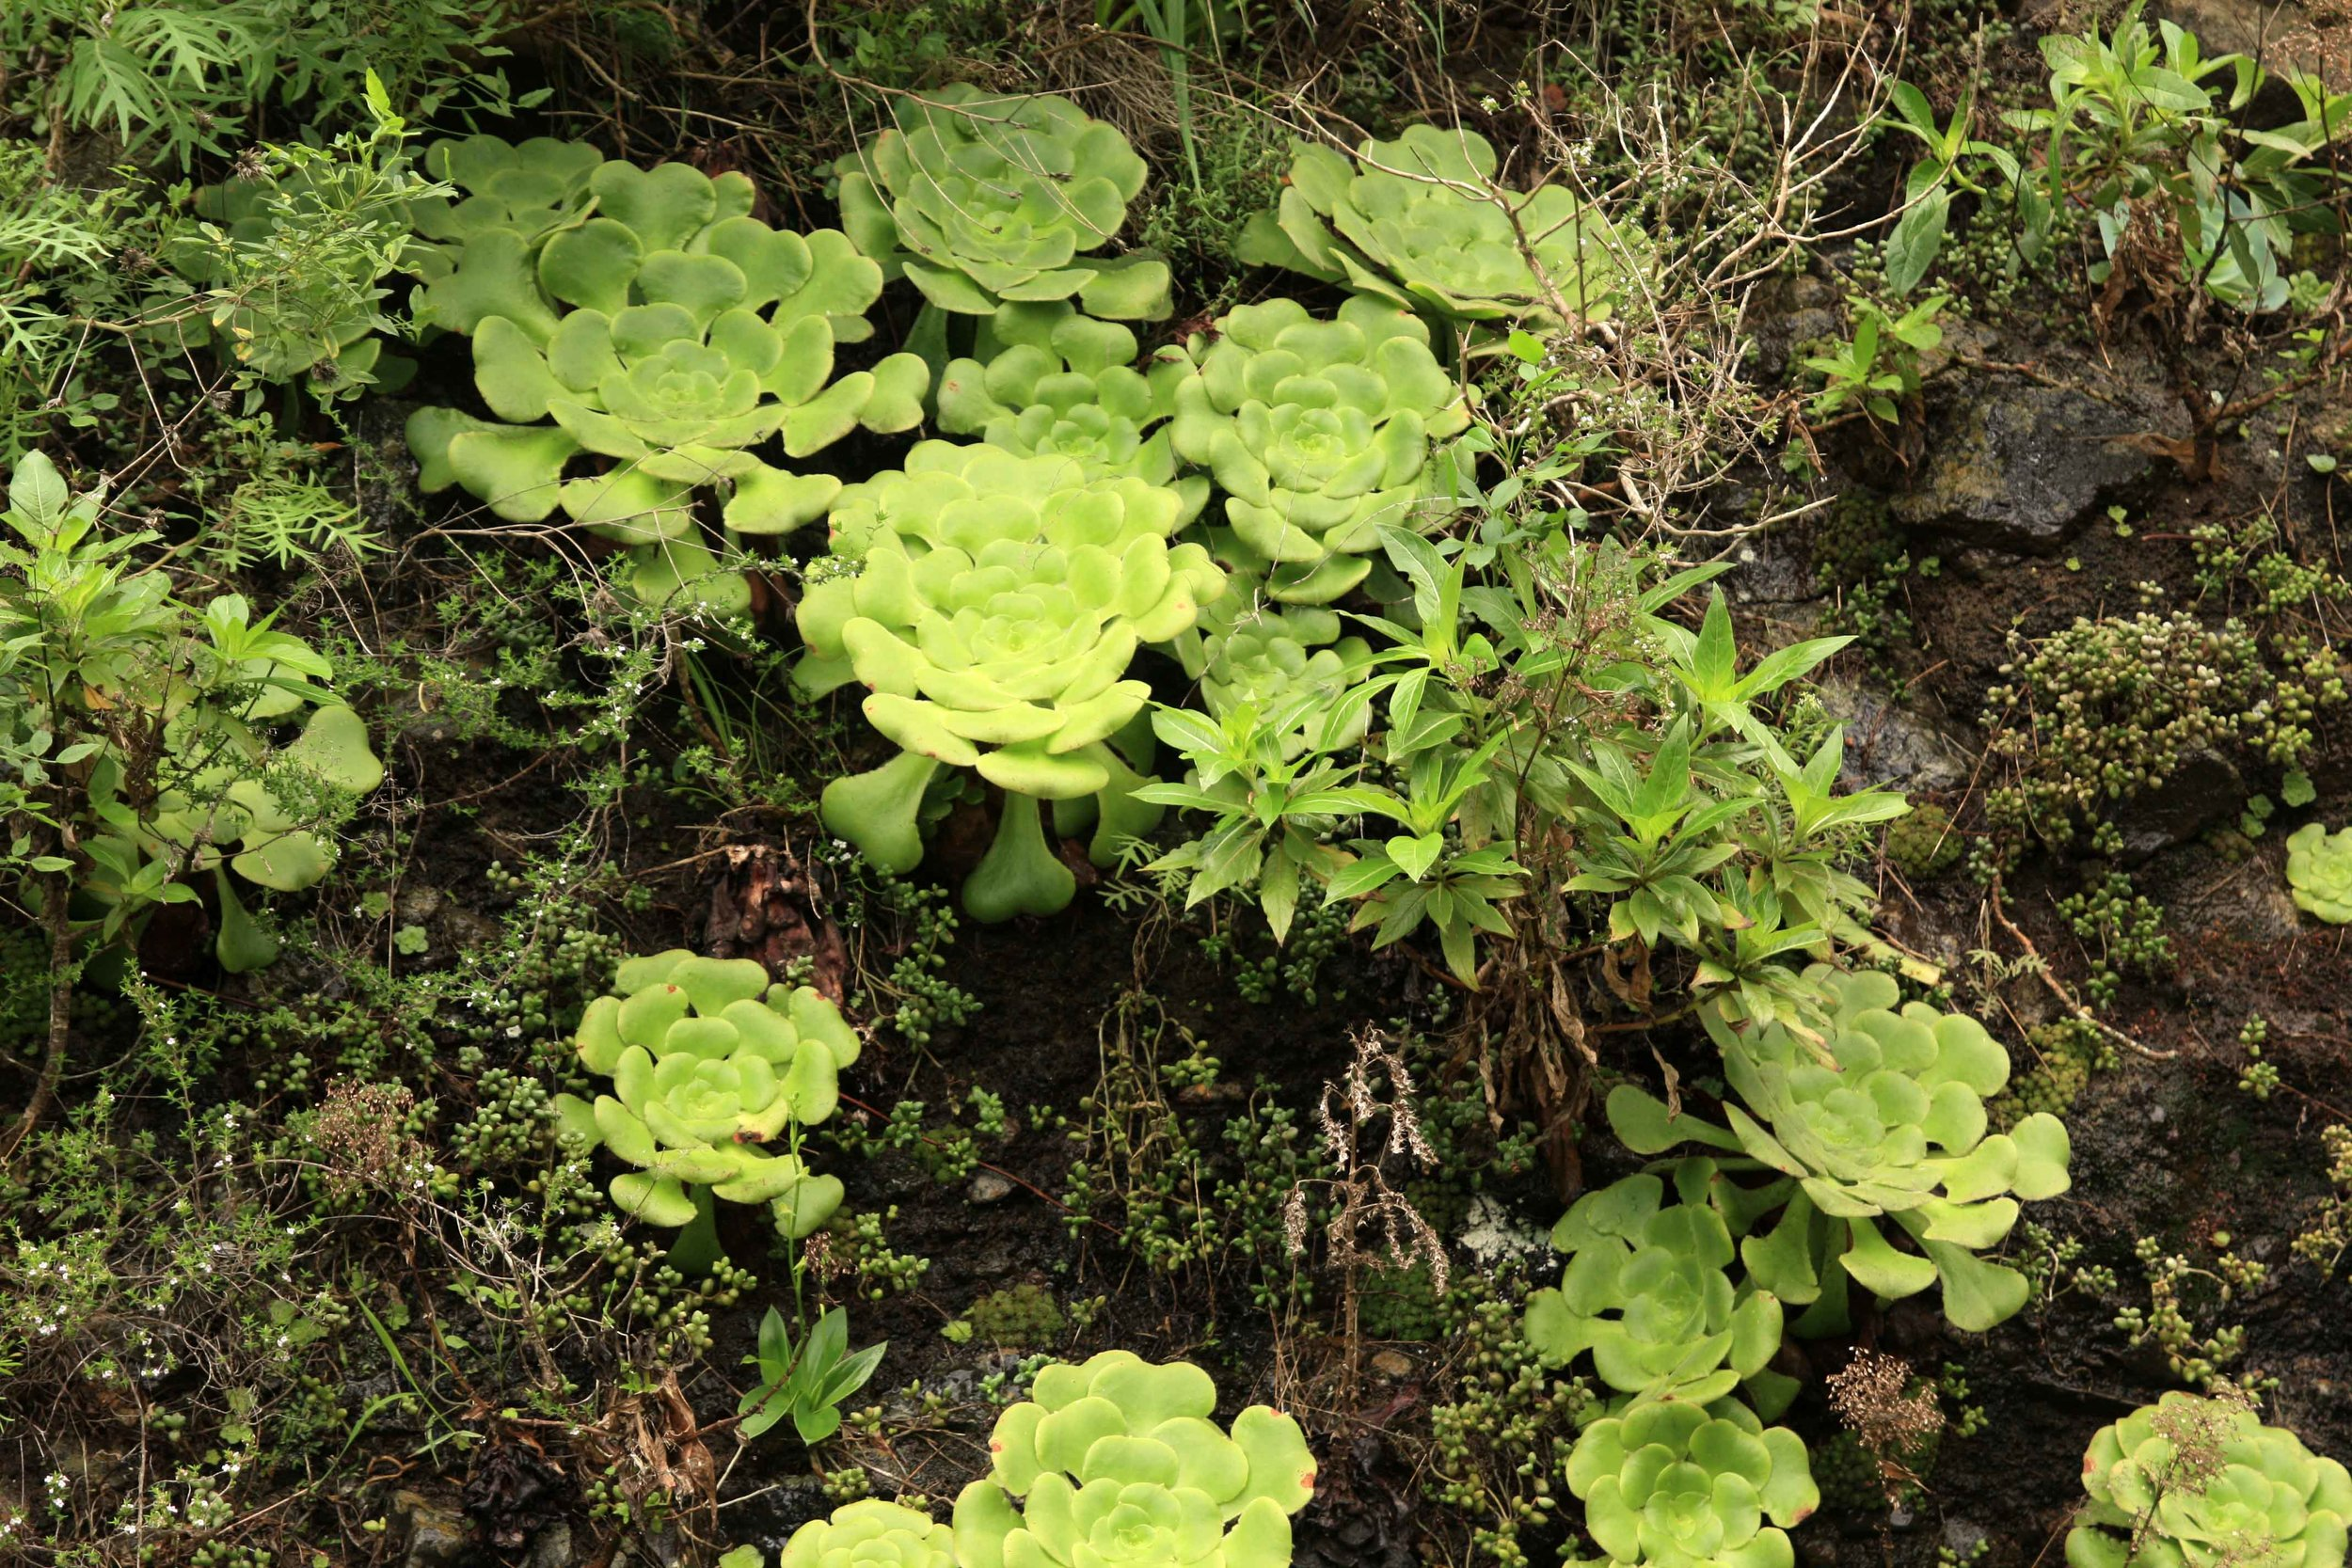 Most species of  aeonium  are endemic to the Canaries, especially rocky areas at wetter elevations.